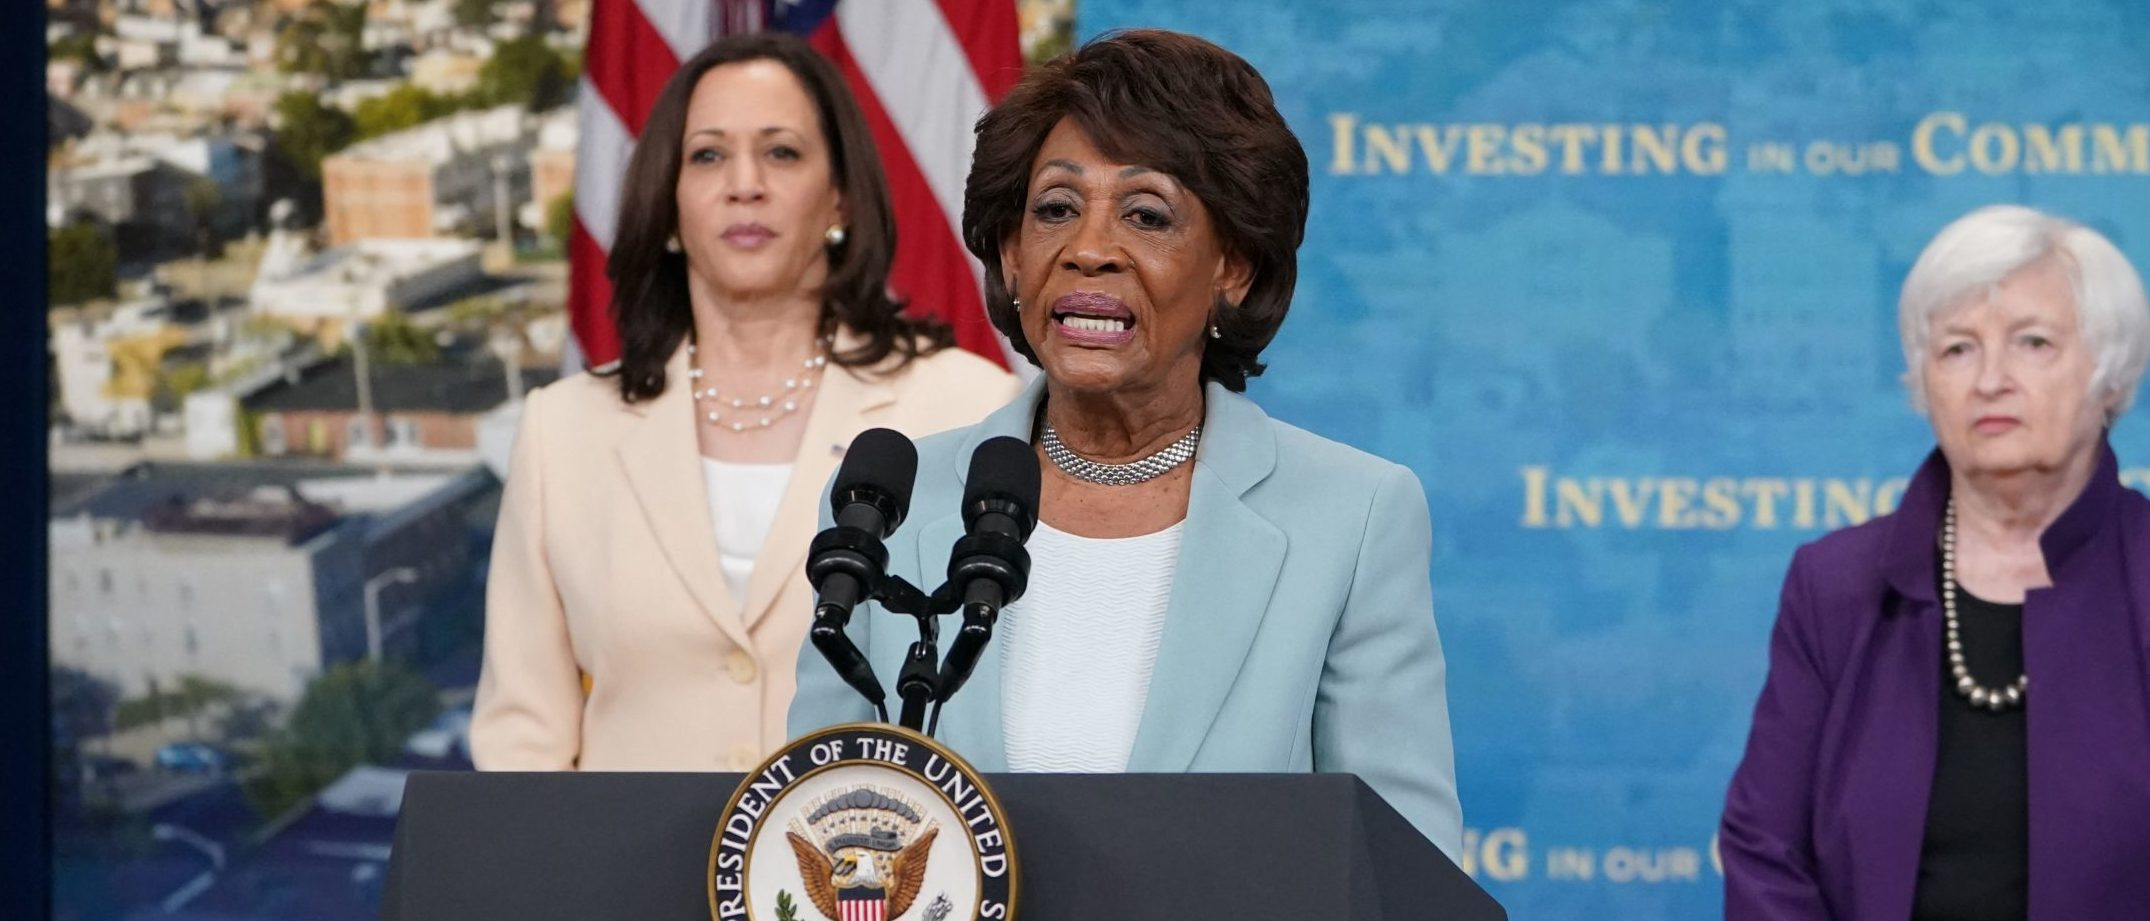 Rep. Maxine Waters speaks at the White House on June 15. (Mandel Ngan/AFP via Getty Images)